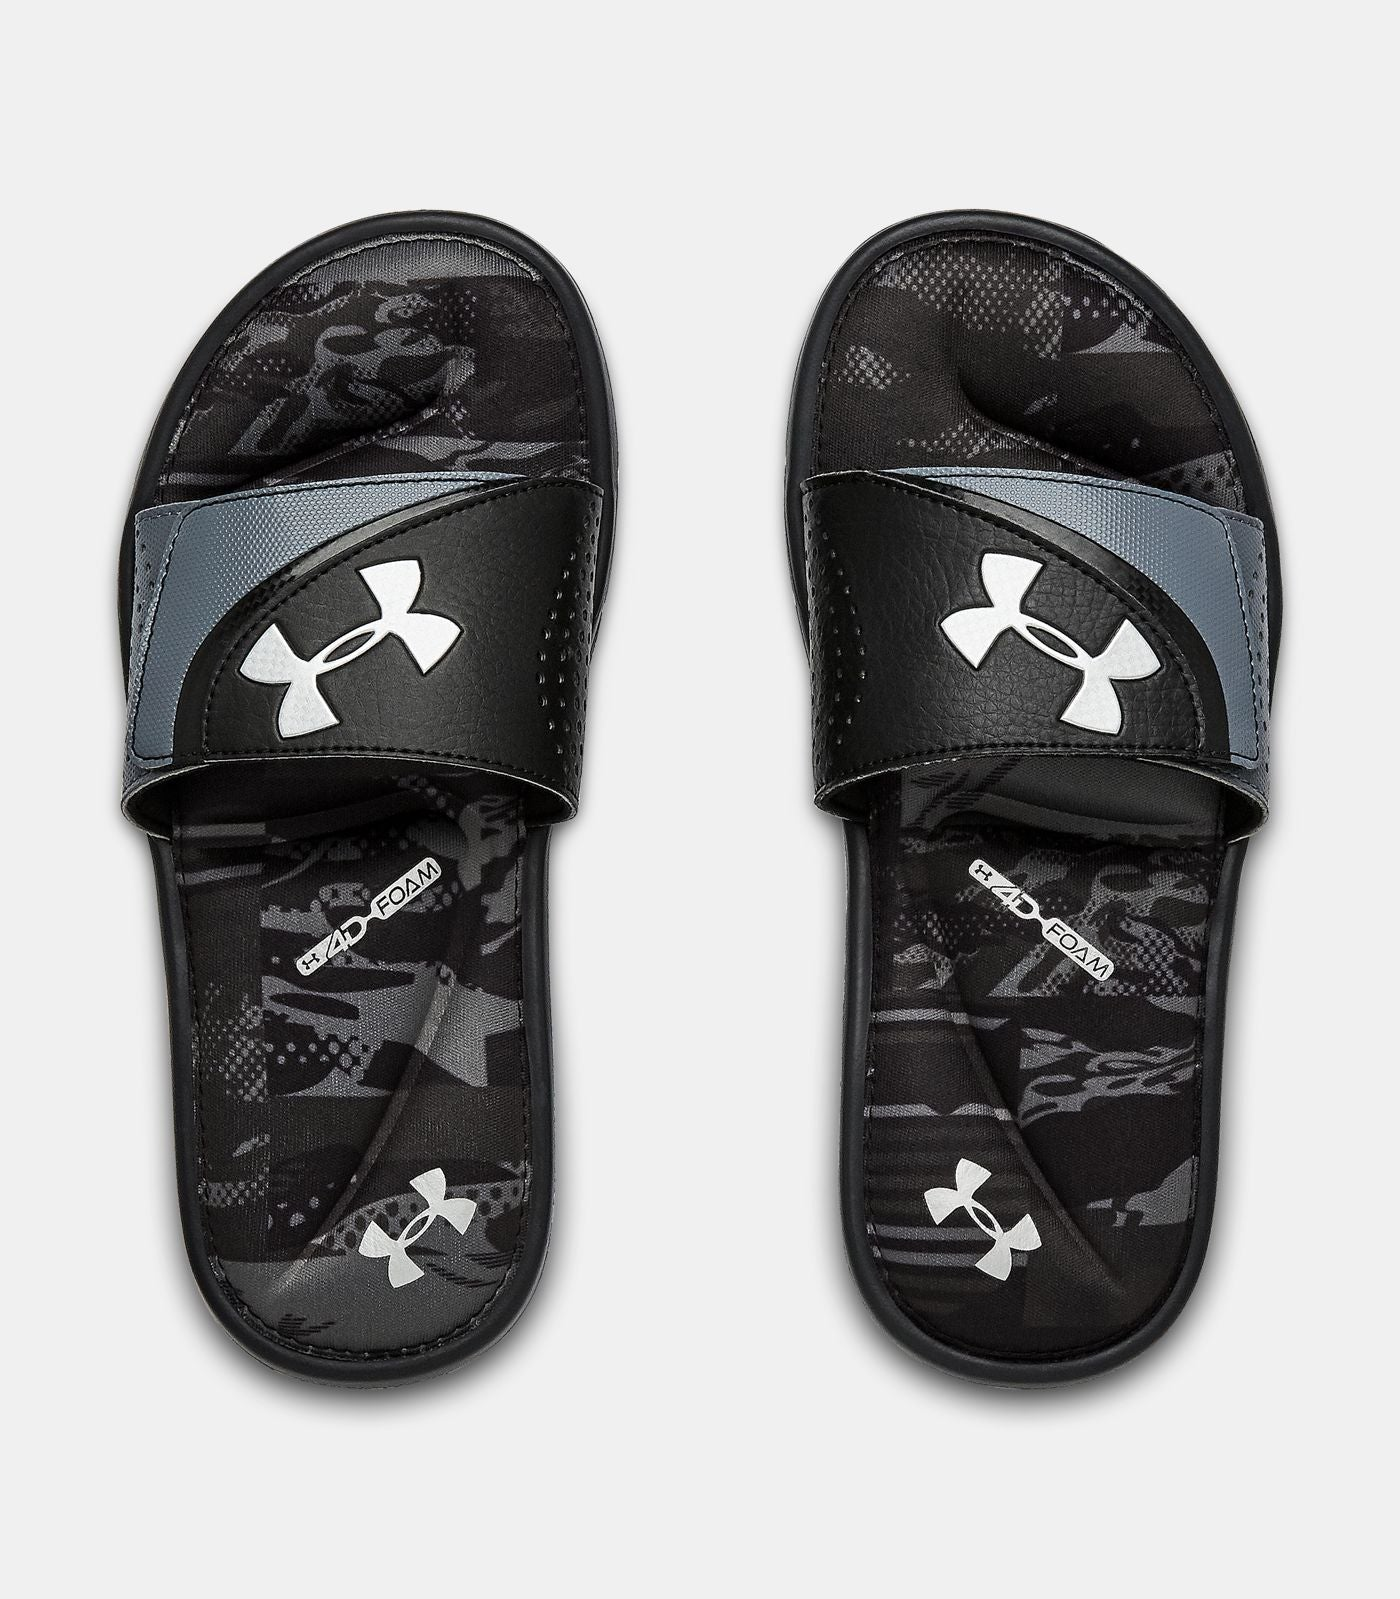 Under Armour Ignite VI Striker Slides